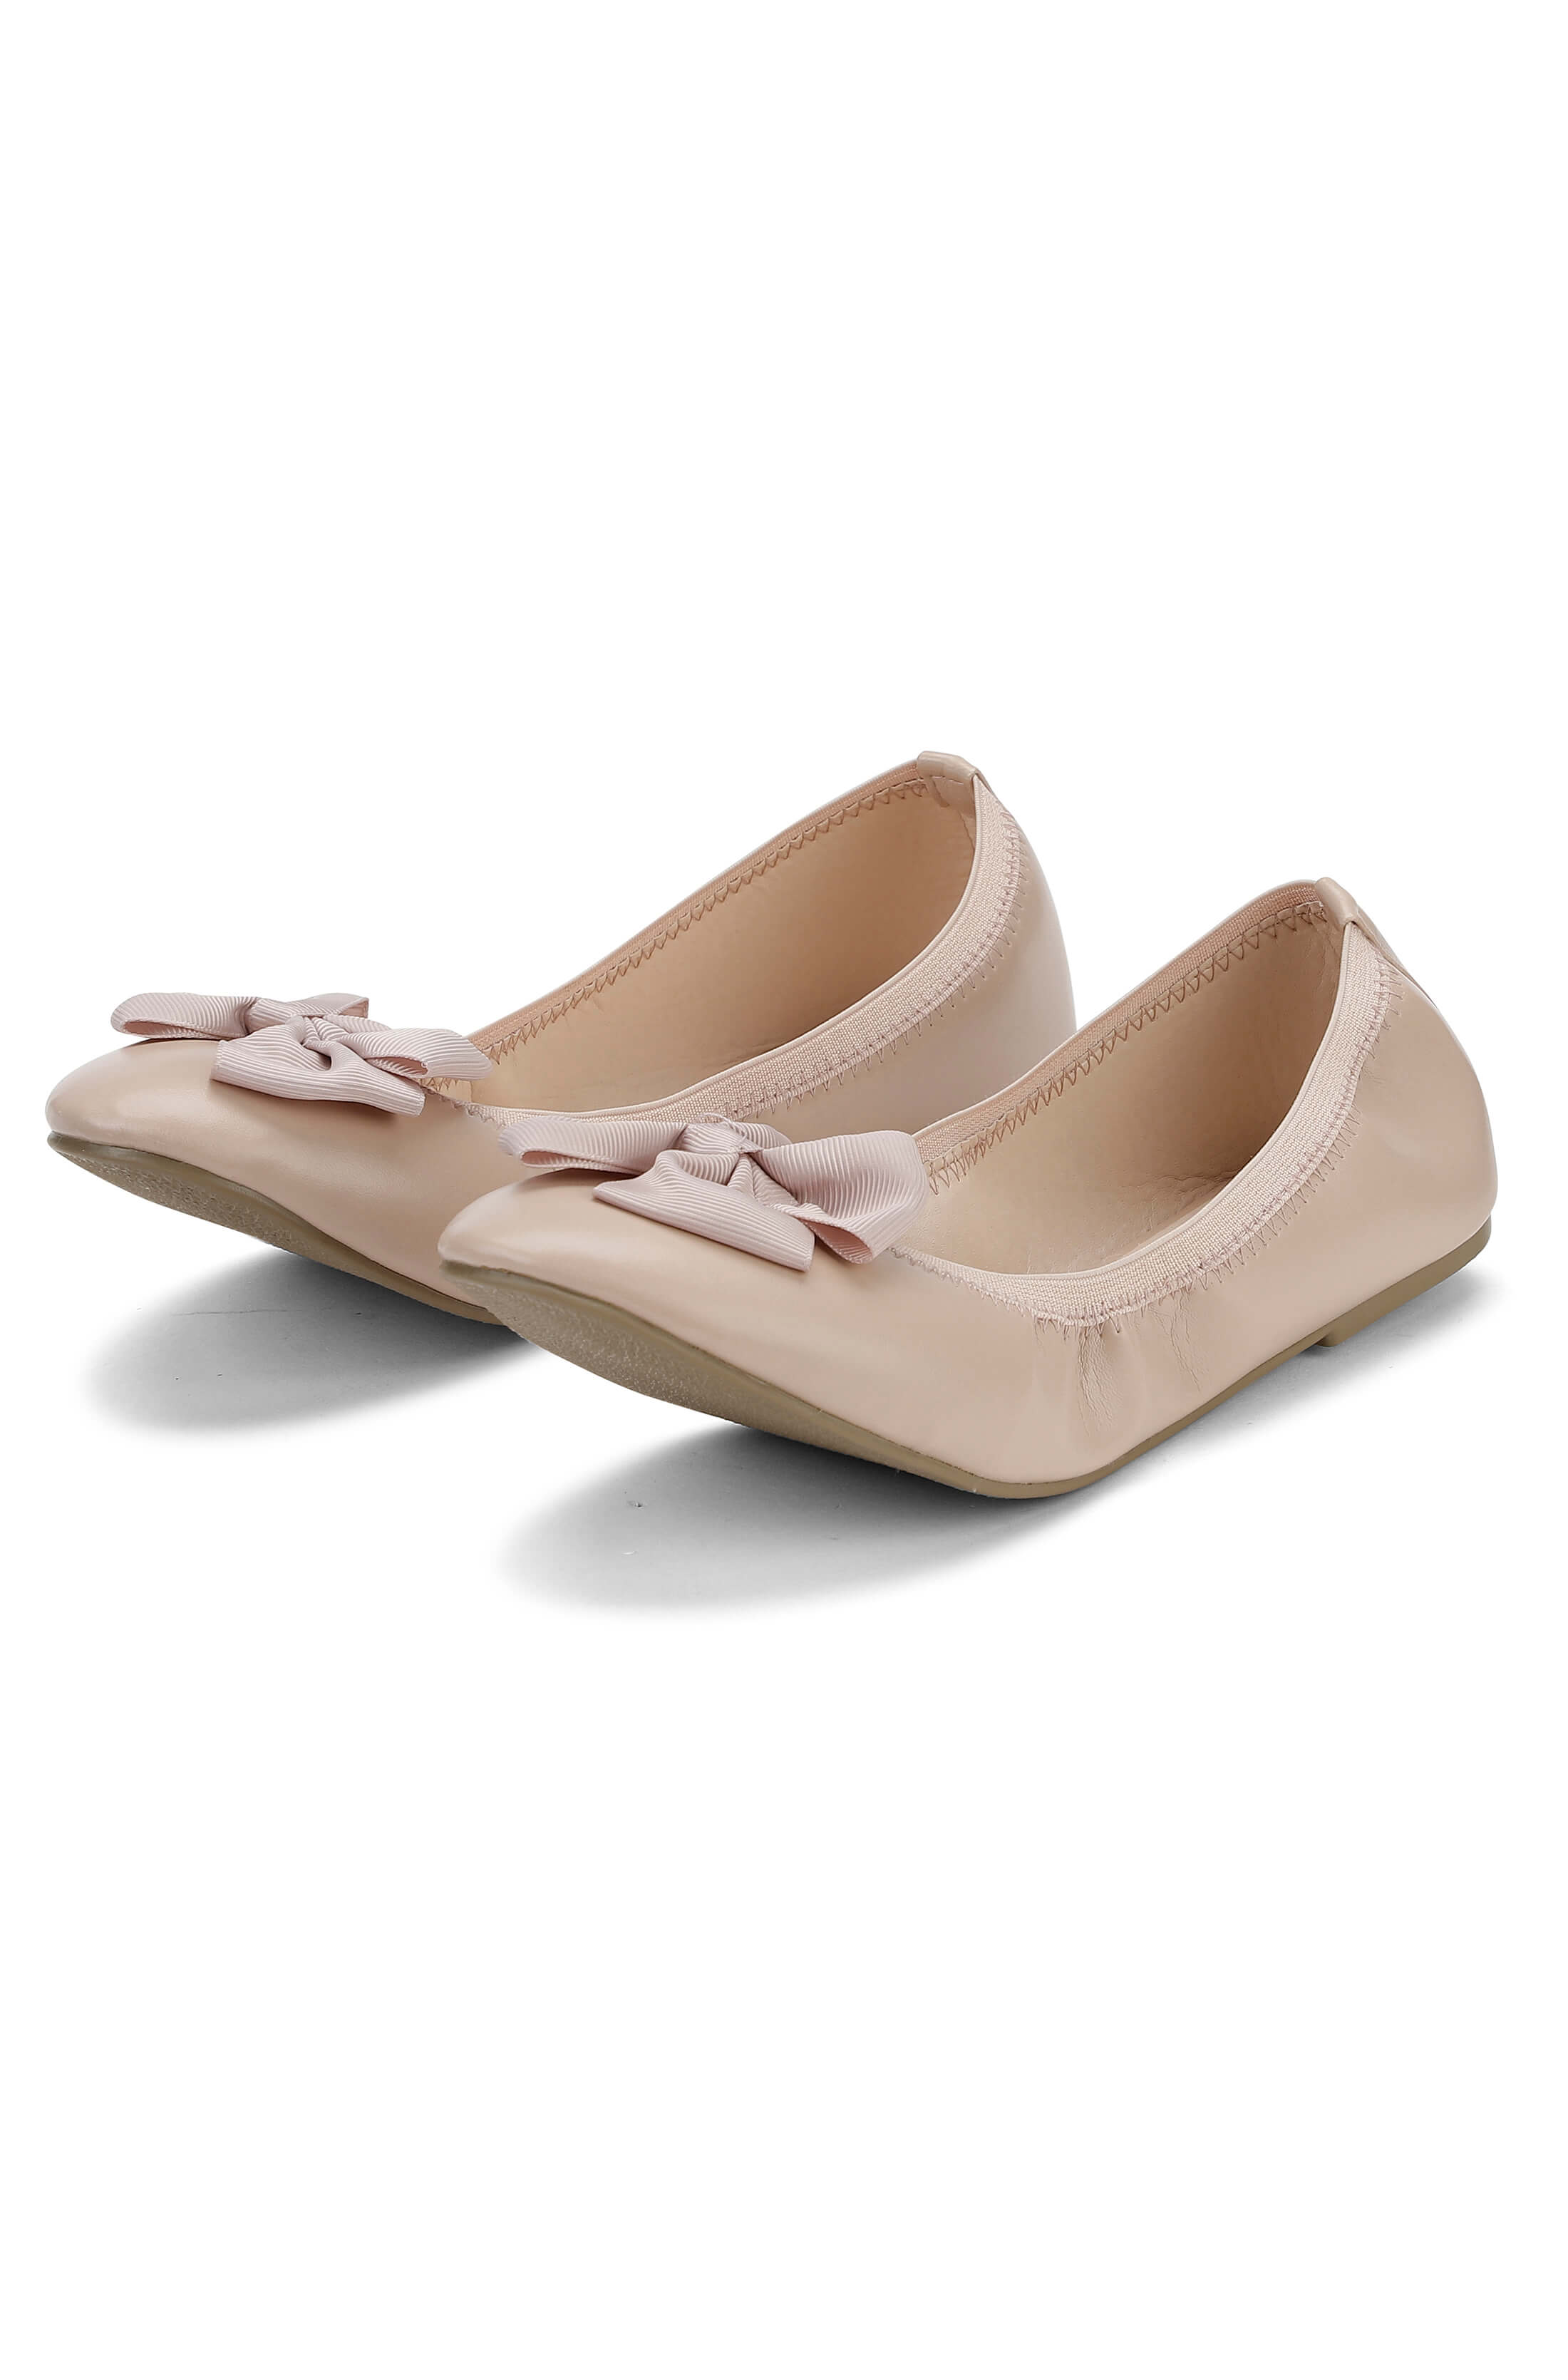 Soft nude ballerina with bow